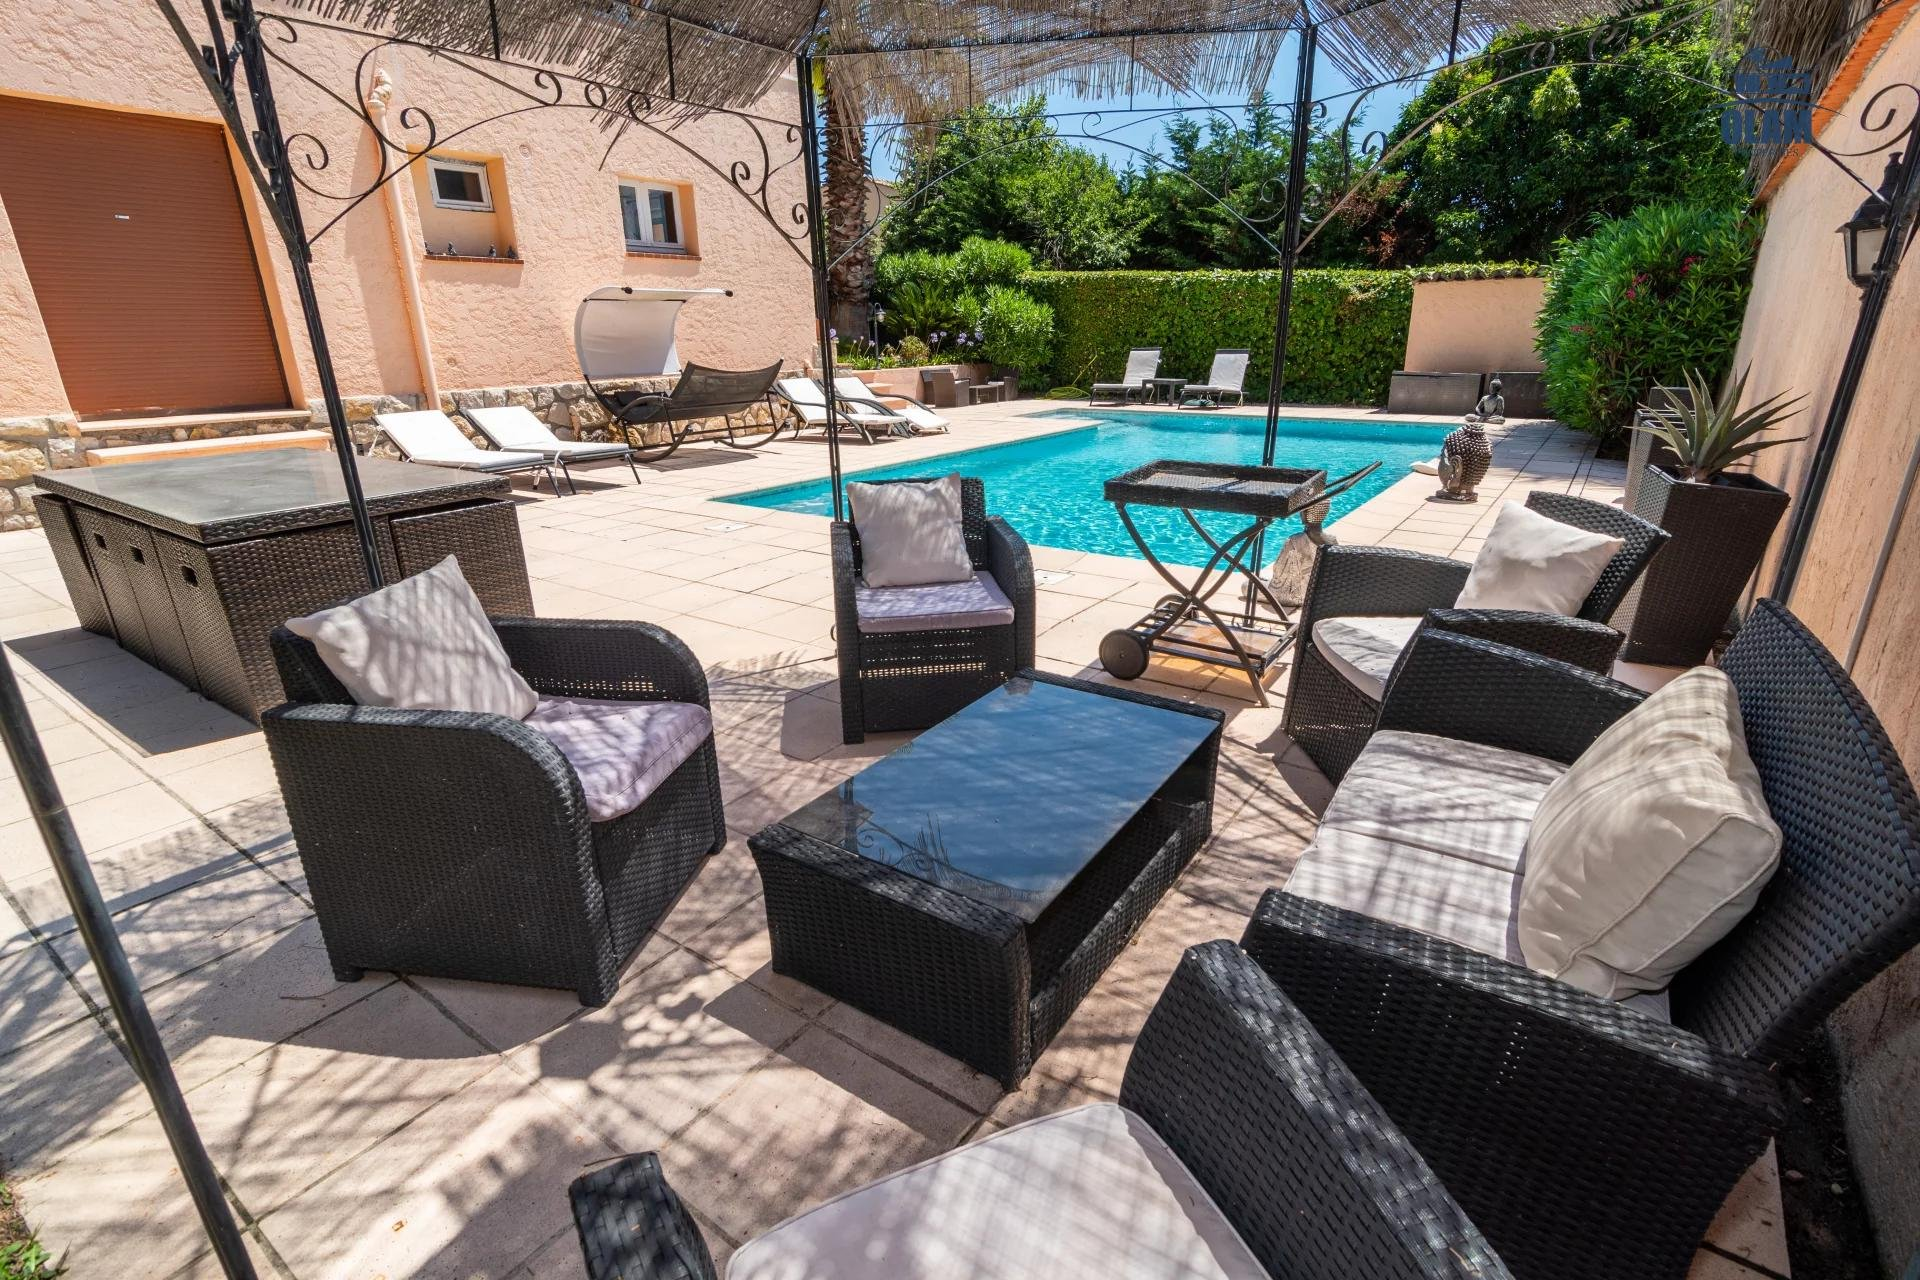 Superb 5 room house with pool and spacious exterior mougins - outdoor living room